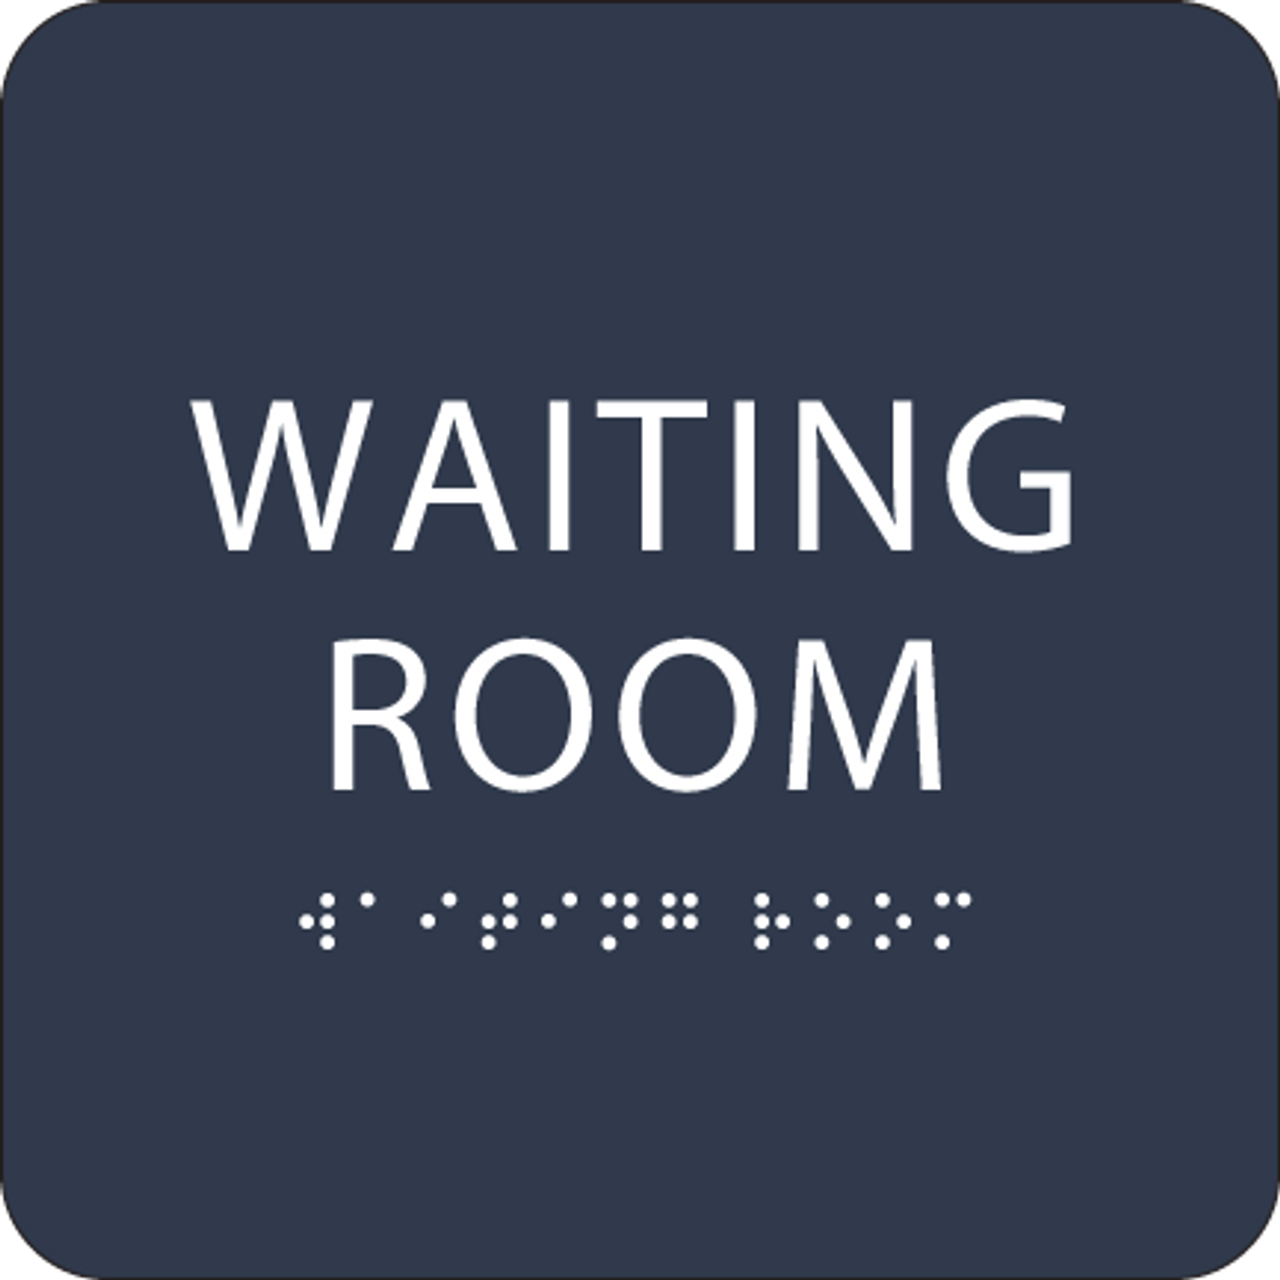 Blue Waiting Room Tactile Sign